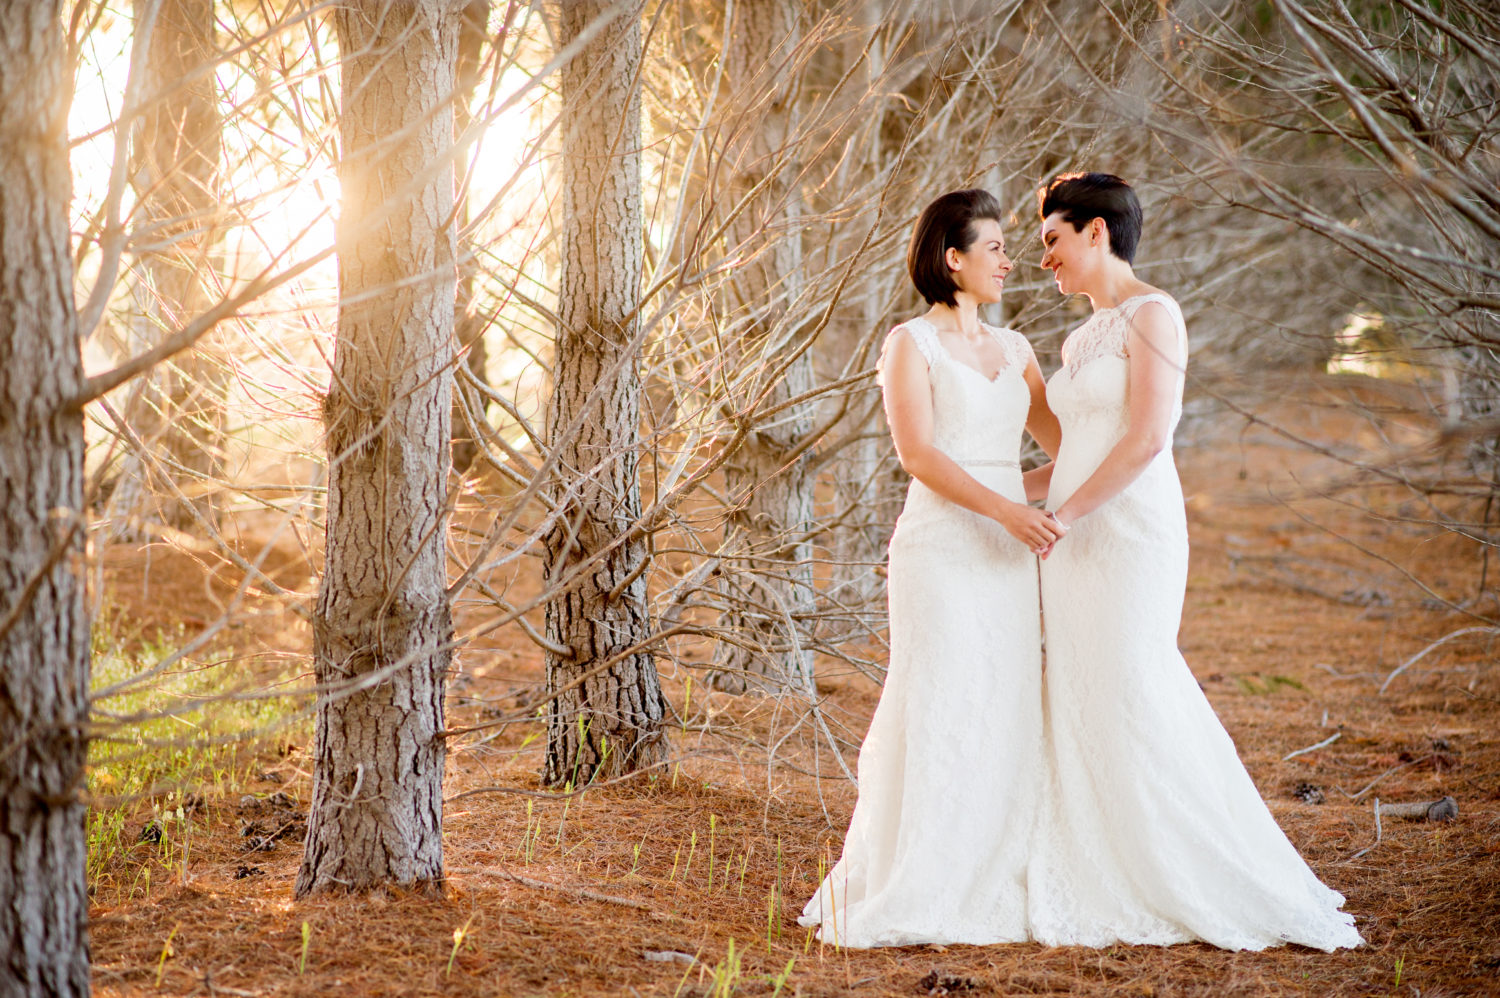 Perth Wedding Photographer Deanna Whyte Photography Natural Photos Same Sex